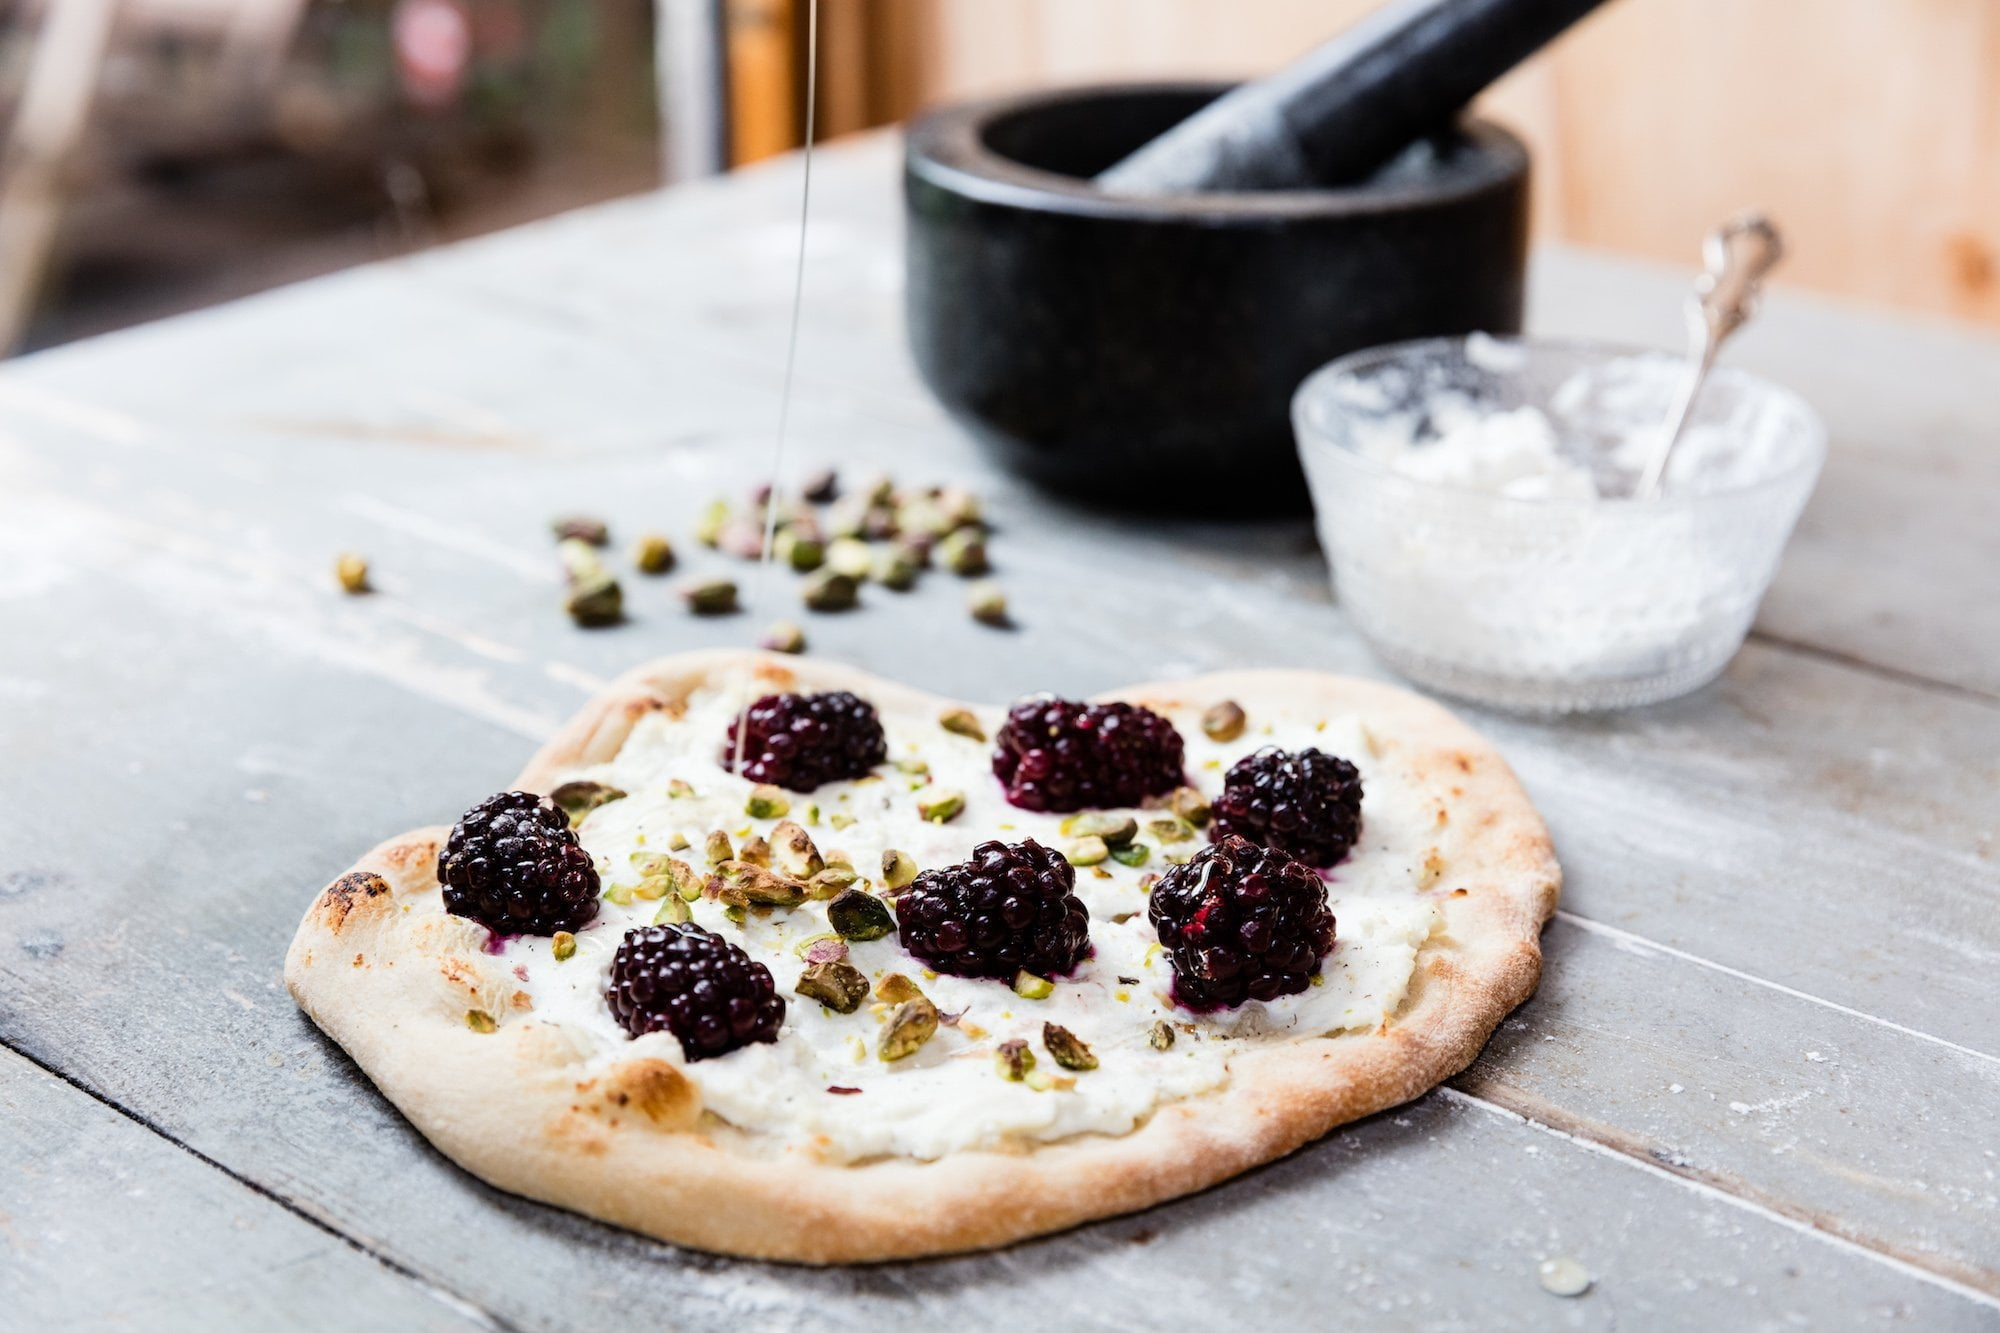 Blackberry, Ricotta & Pistachio Pizza Featured Image